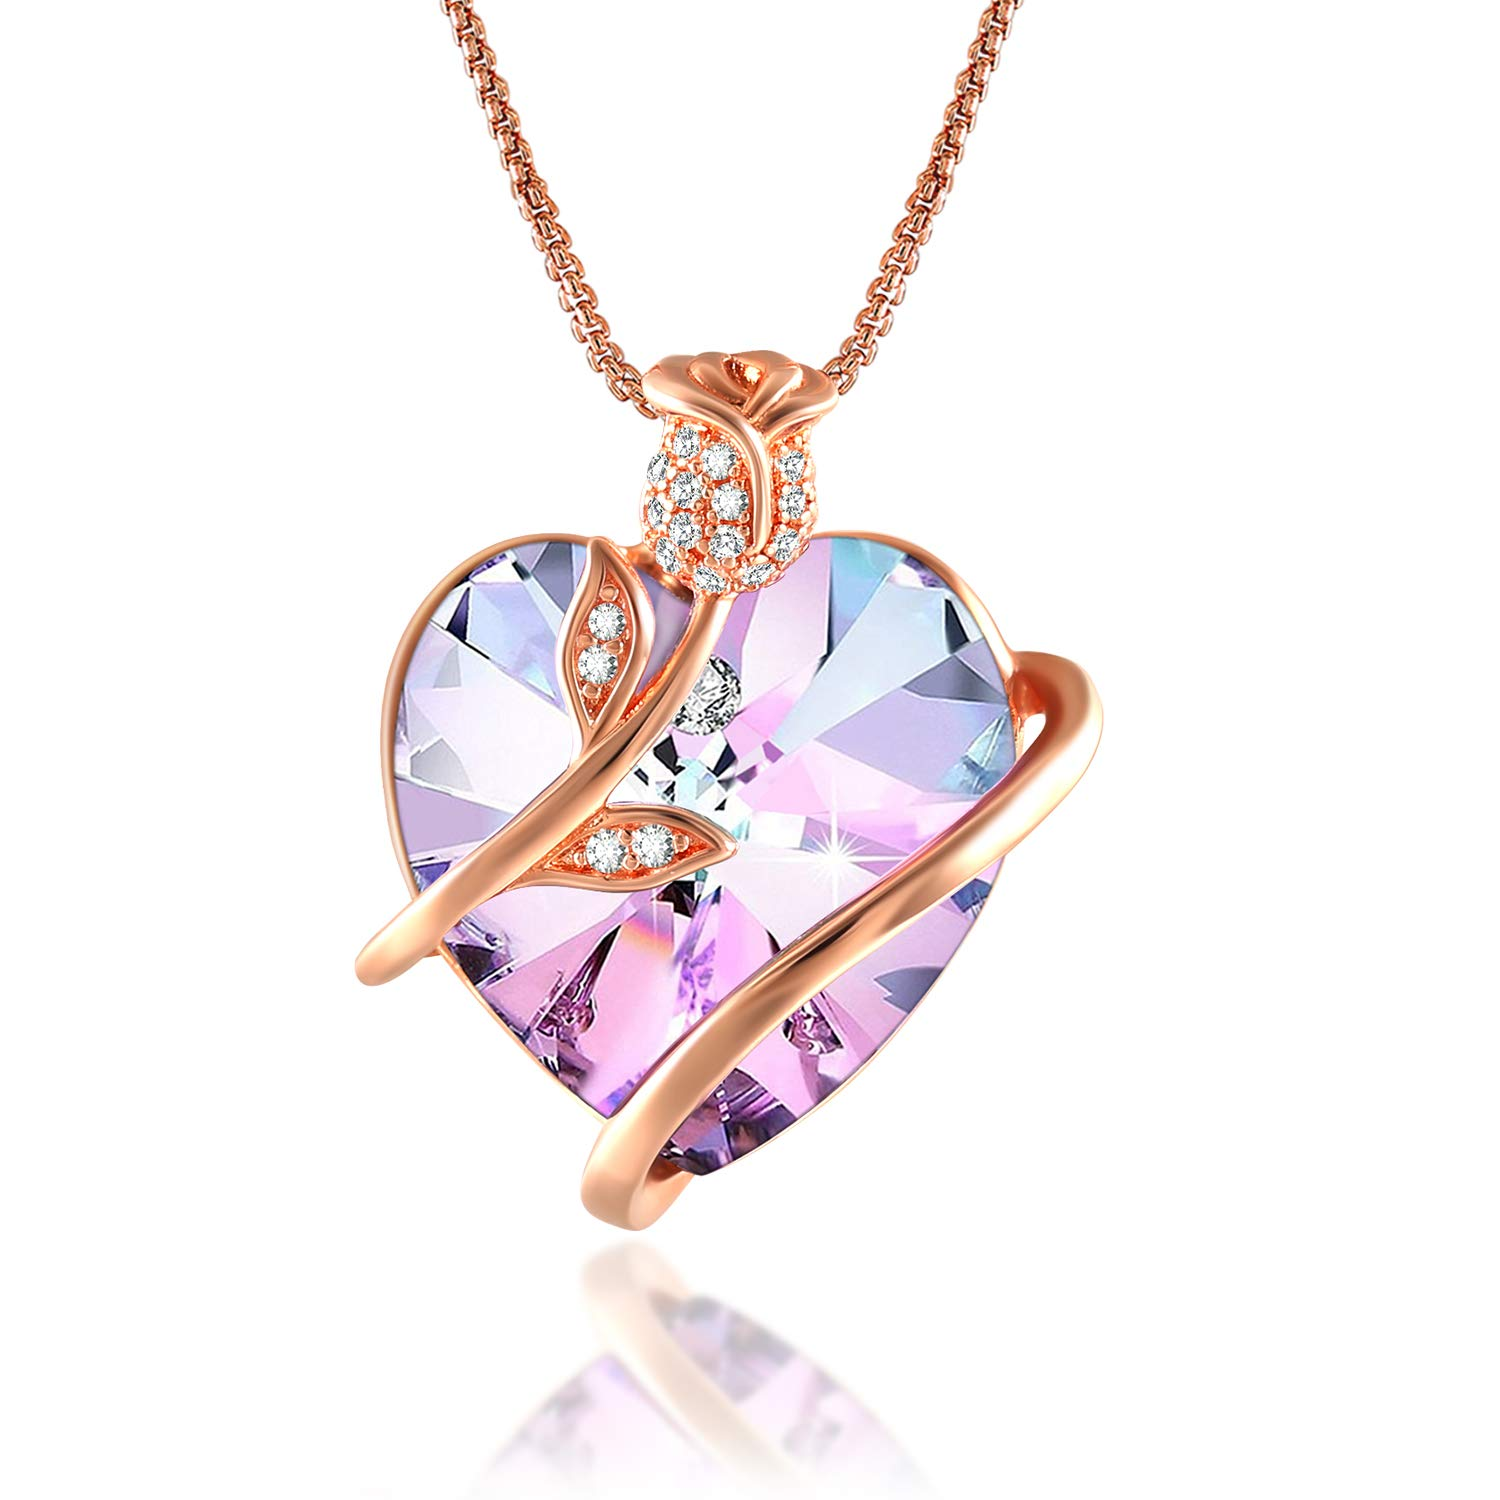 Angelady Rose Flower Heart Necklace for Women, Crystals from Swarovski, Crystal Pendant Necklaces in White Bow Gift Box,Valentine's Day Necklace Gifts for Wife Girlfriend Friend Daughter